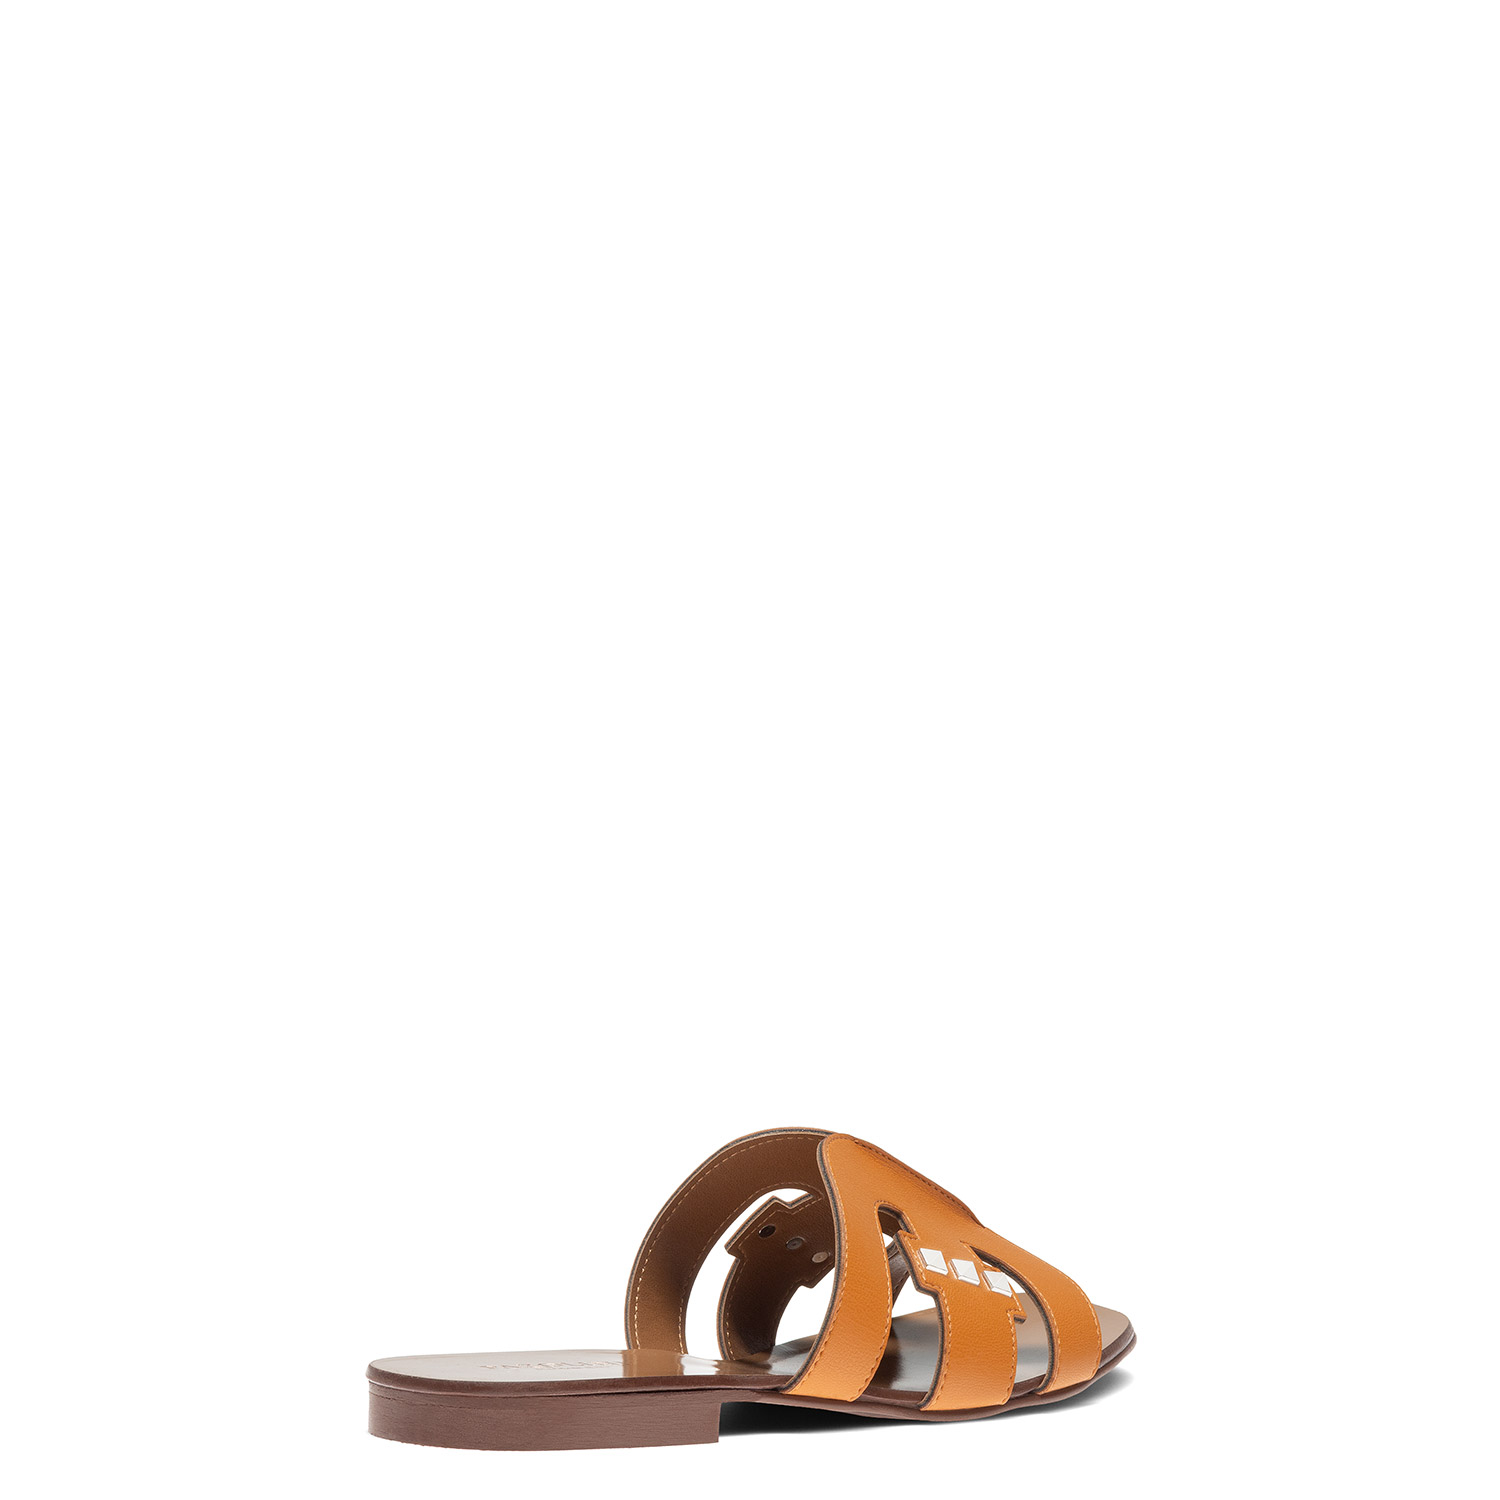 Men's sandals PAZOLINI FO-X7758-32